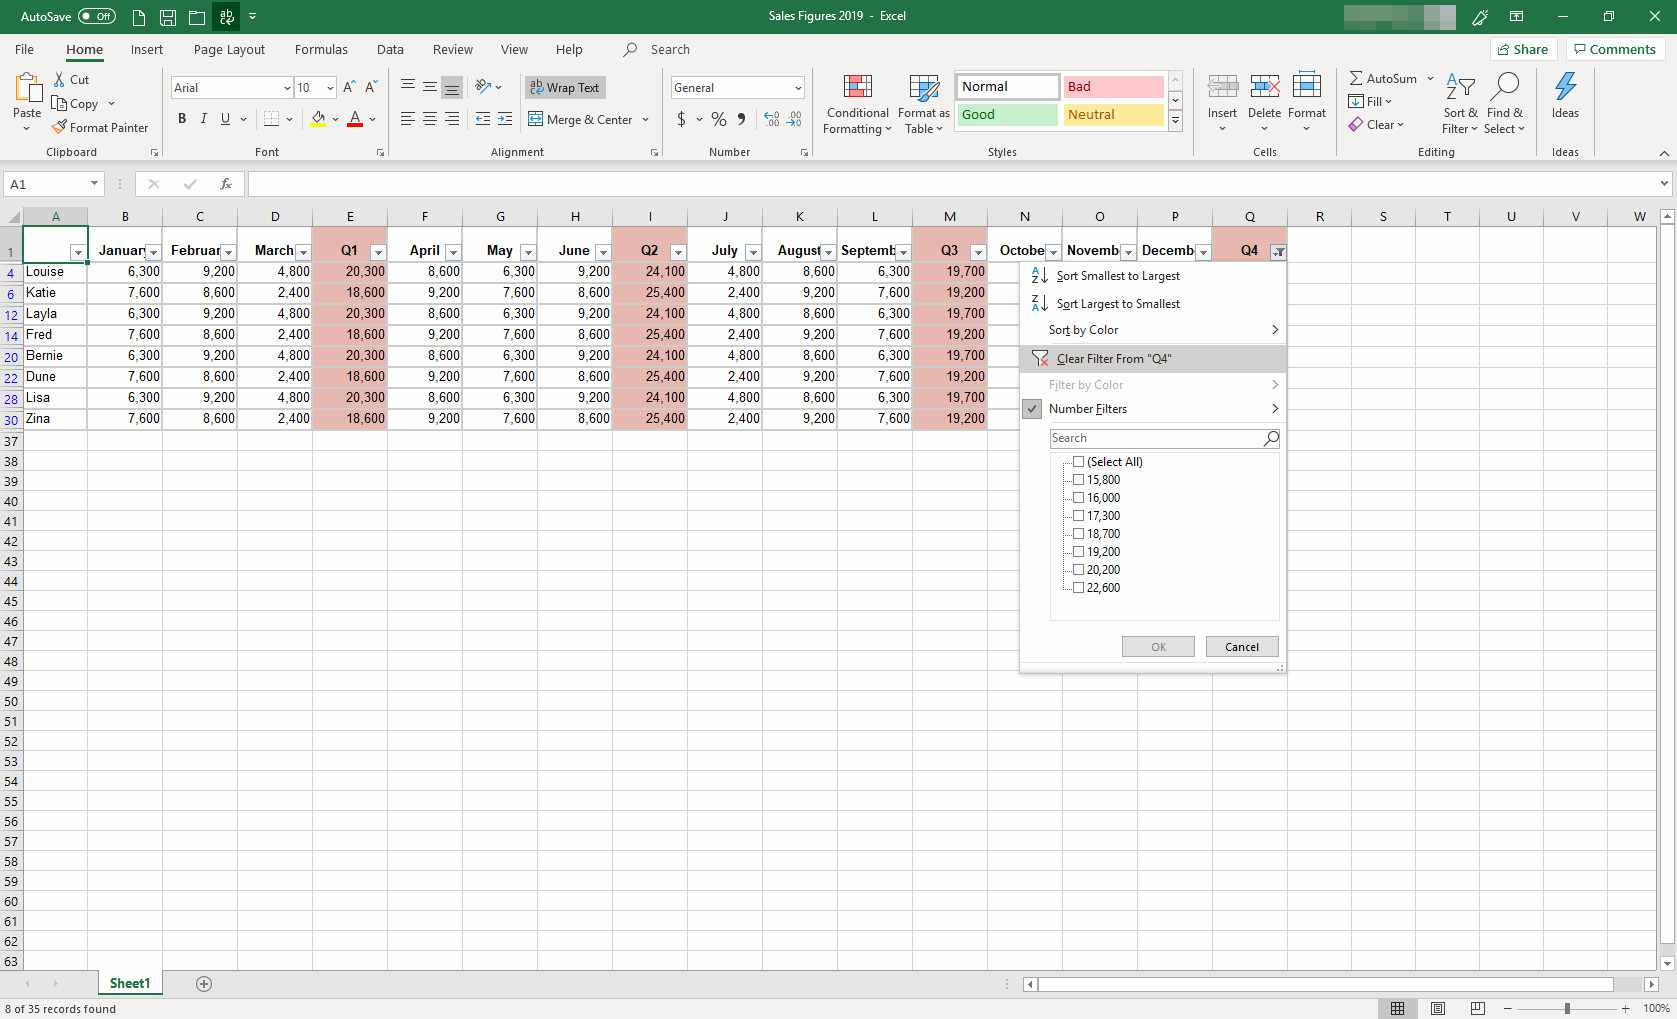 MS Excel with filter dialog box displayed